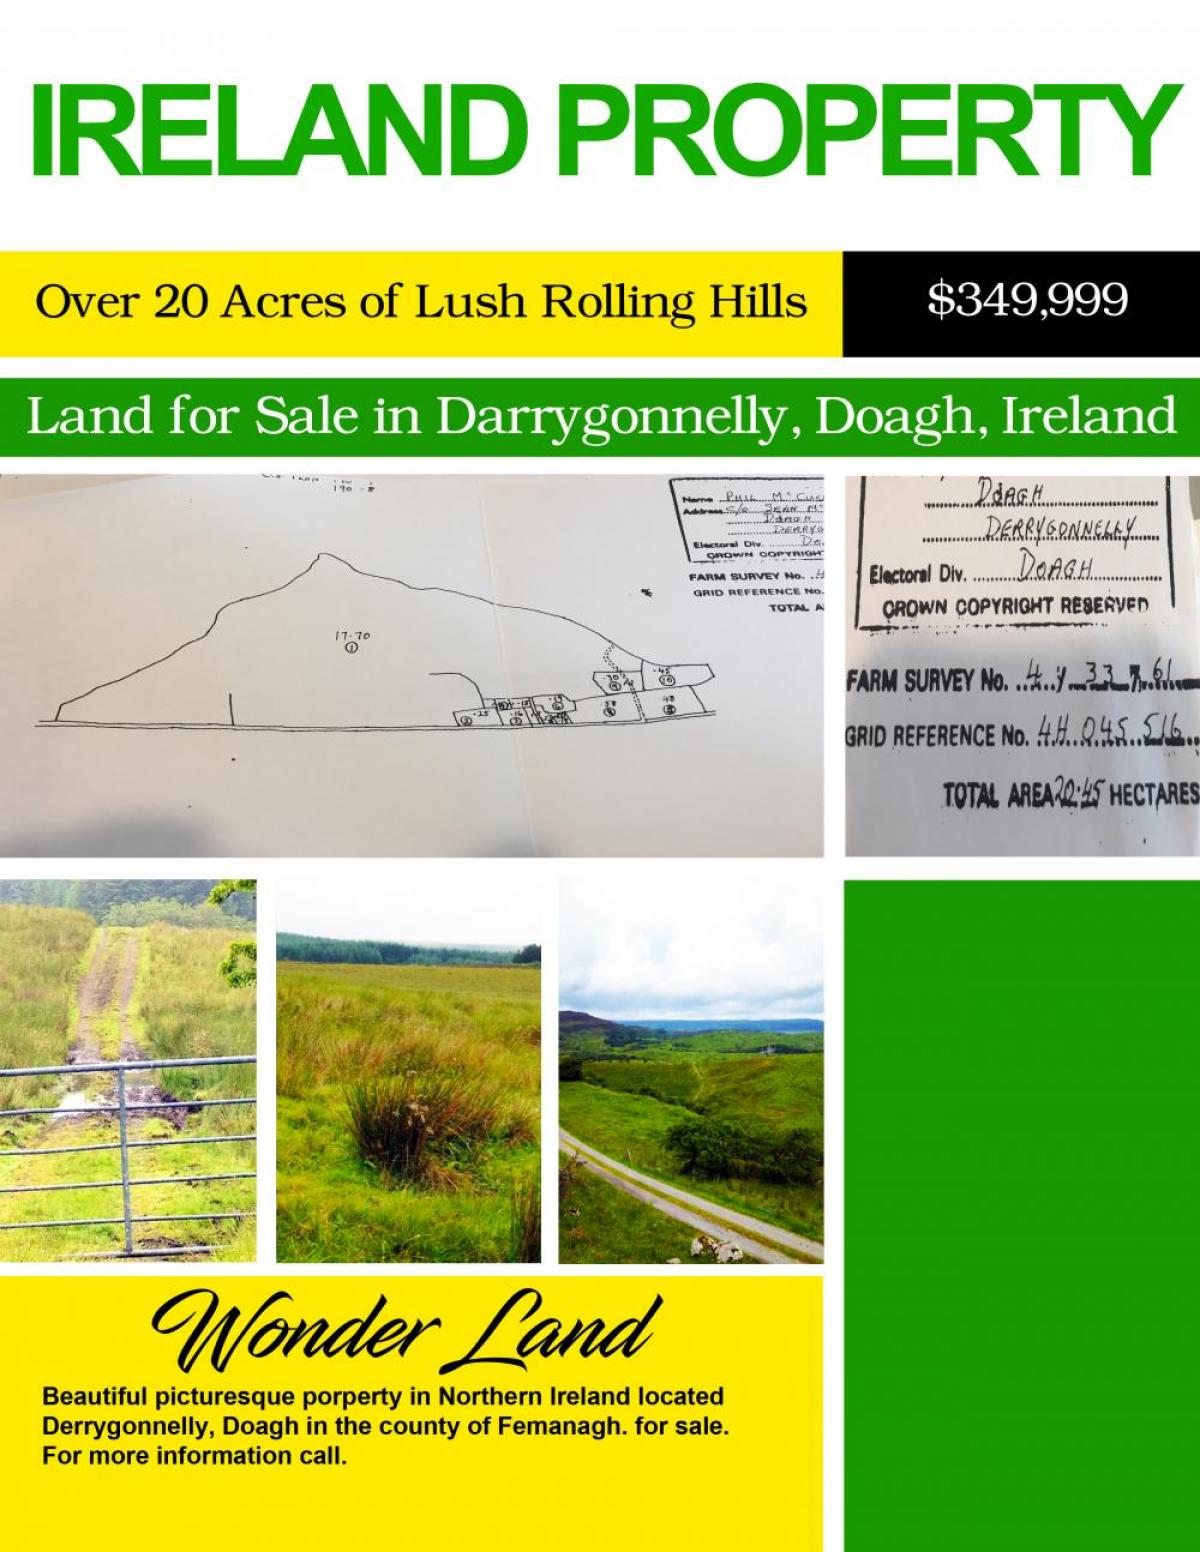 Property listed For Sale in Derrybeg, Ireland